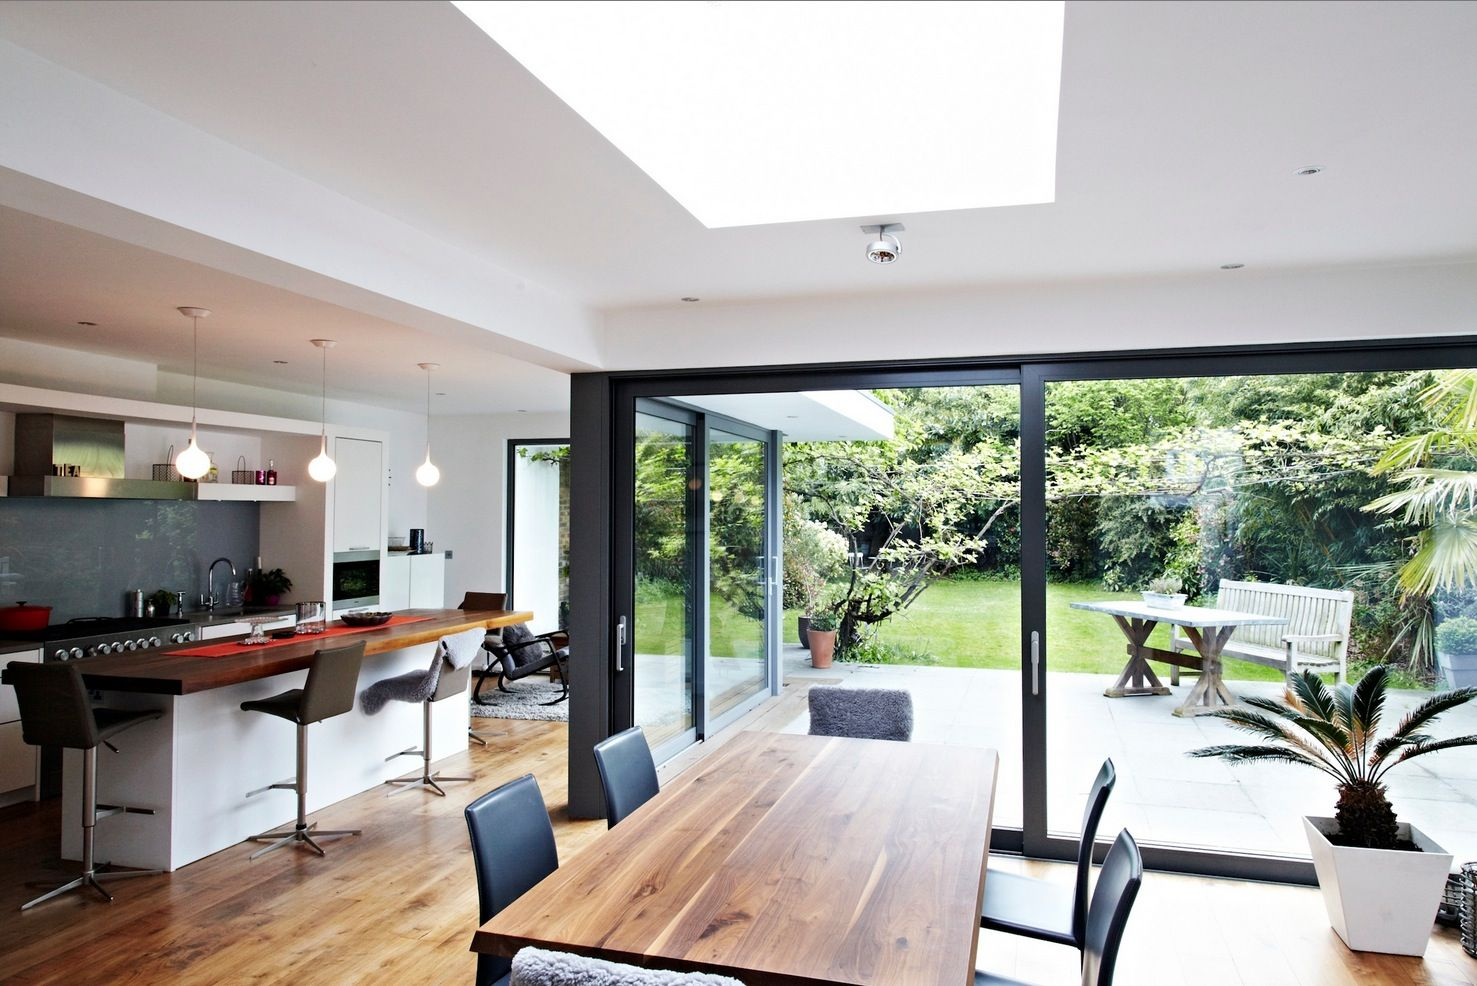 Living Room Extensions Interior Amusing Httpcdn.homedesigningwpcontentuploads201308Kitchen . Decorating Inspiration